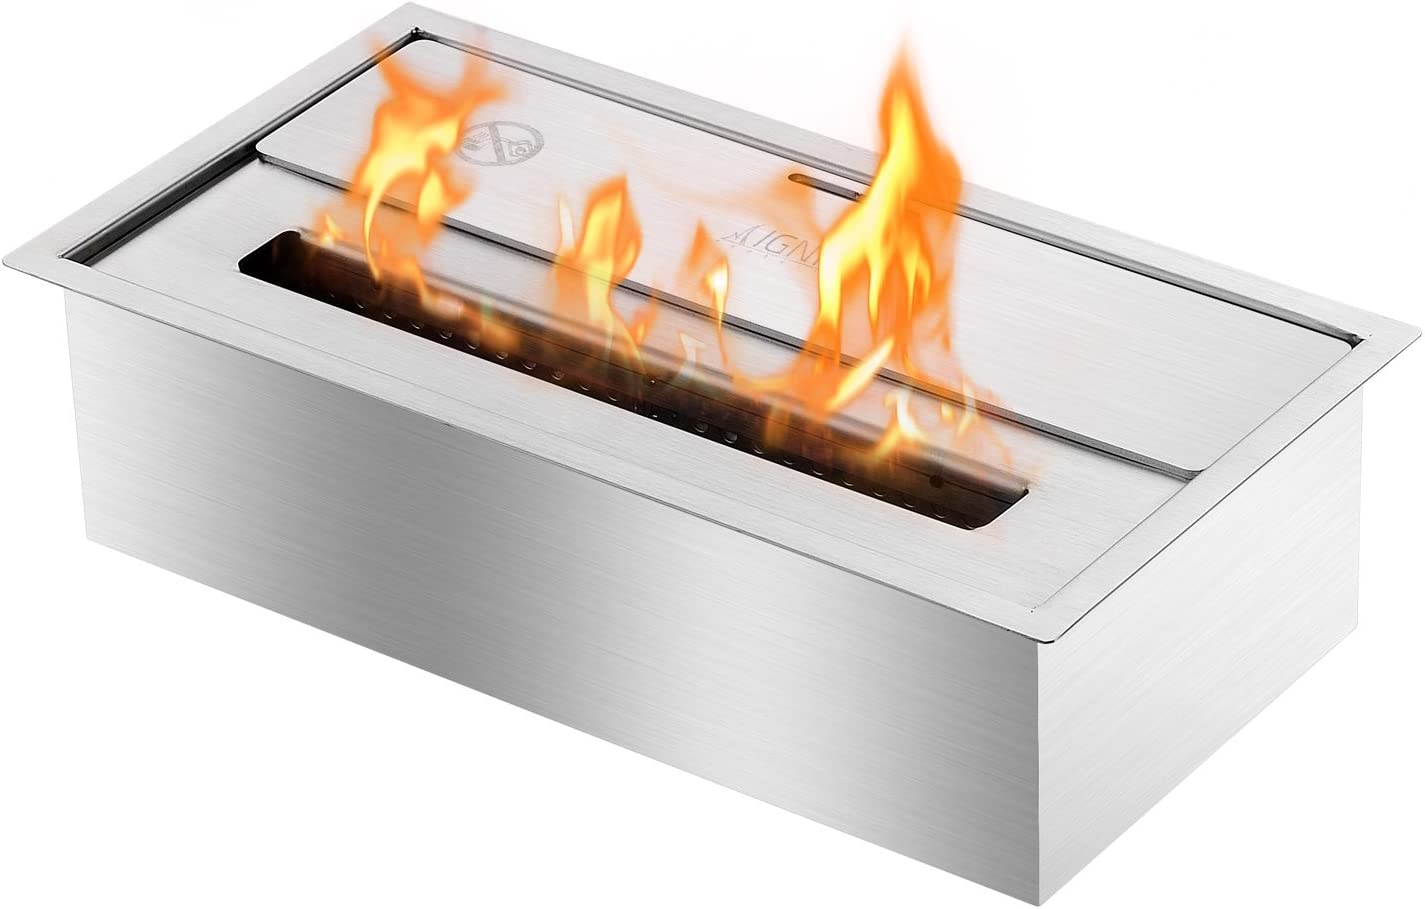 Eco Hybrid Bio Free shipping anywhere in the nation Max 40% OFF Ethanol Ventless Insert Burner EHB140 Fireplace -